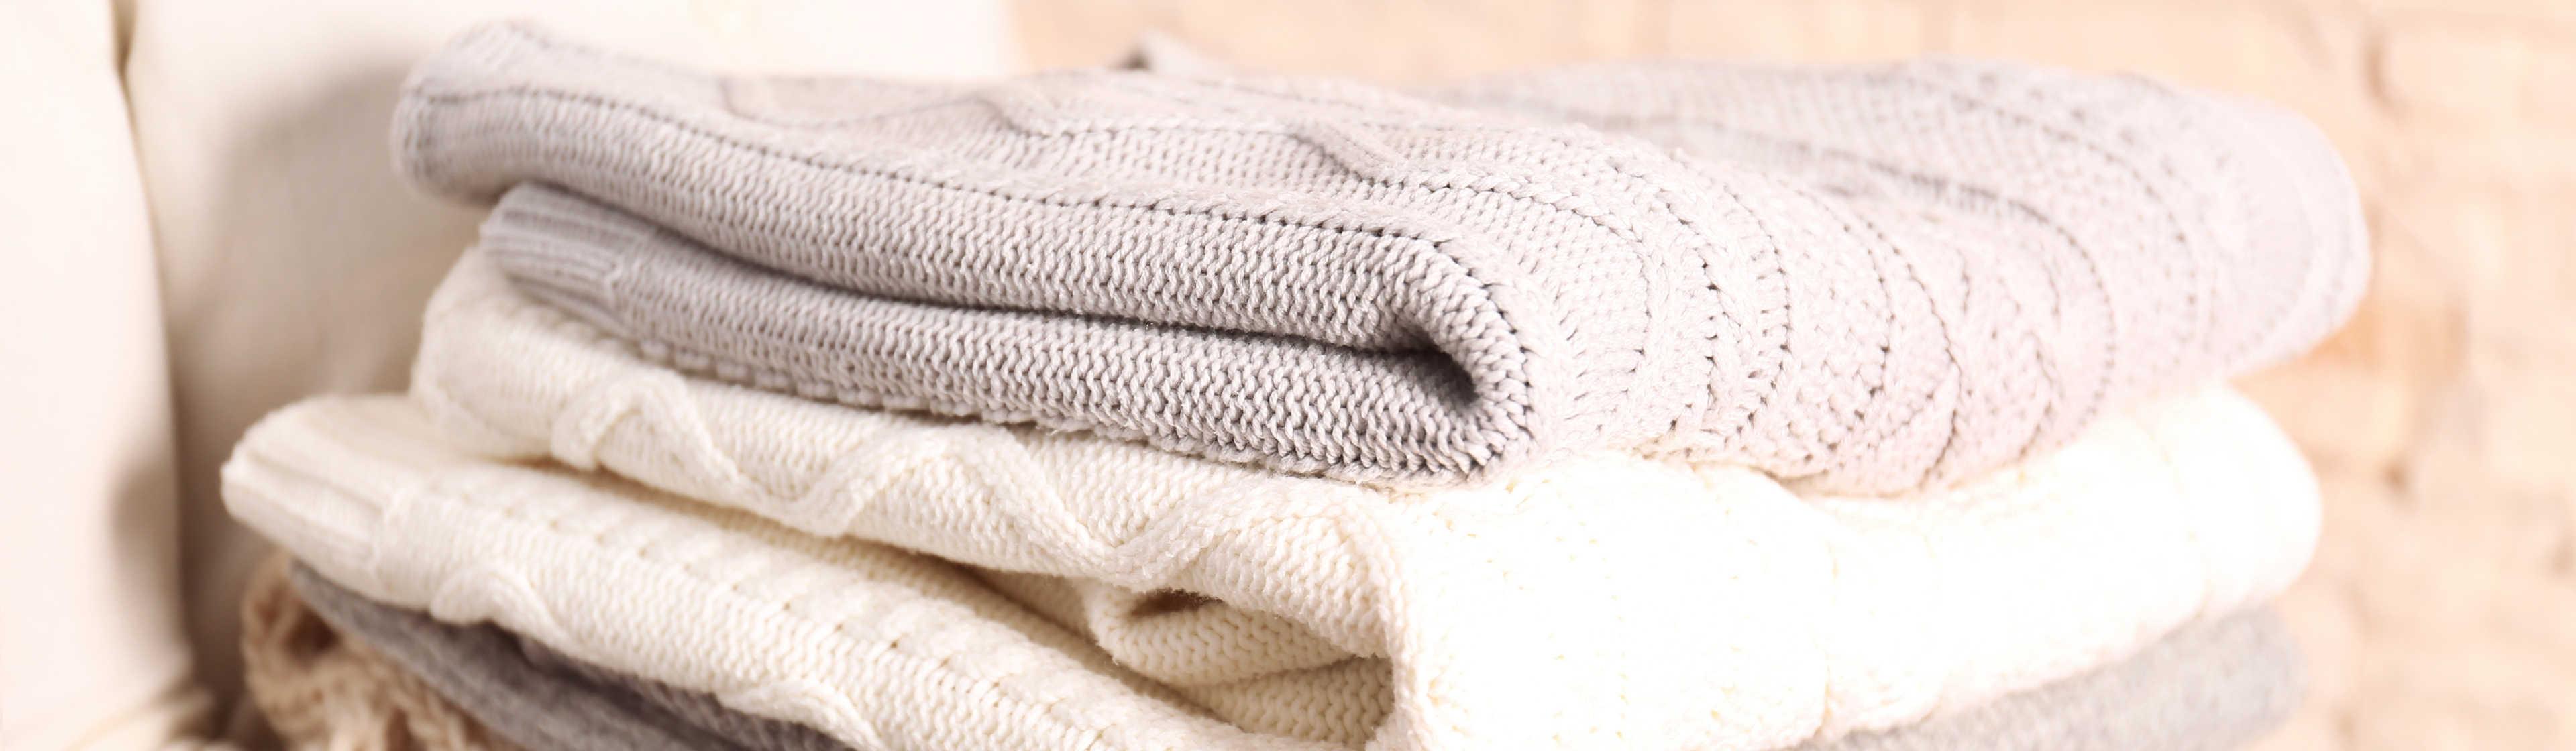 KNITWEAR CARE GUIDE